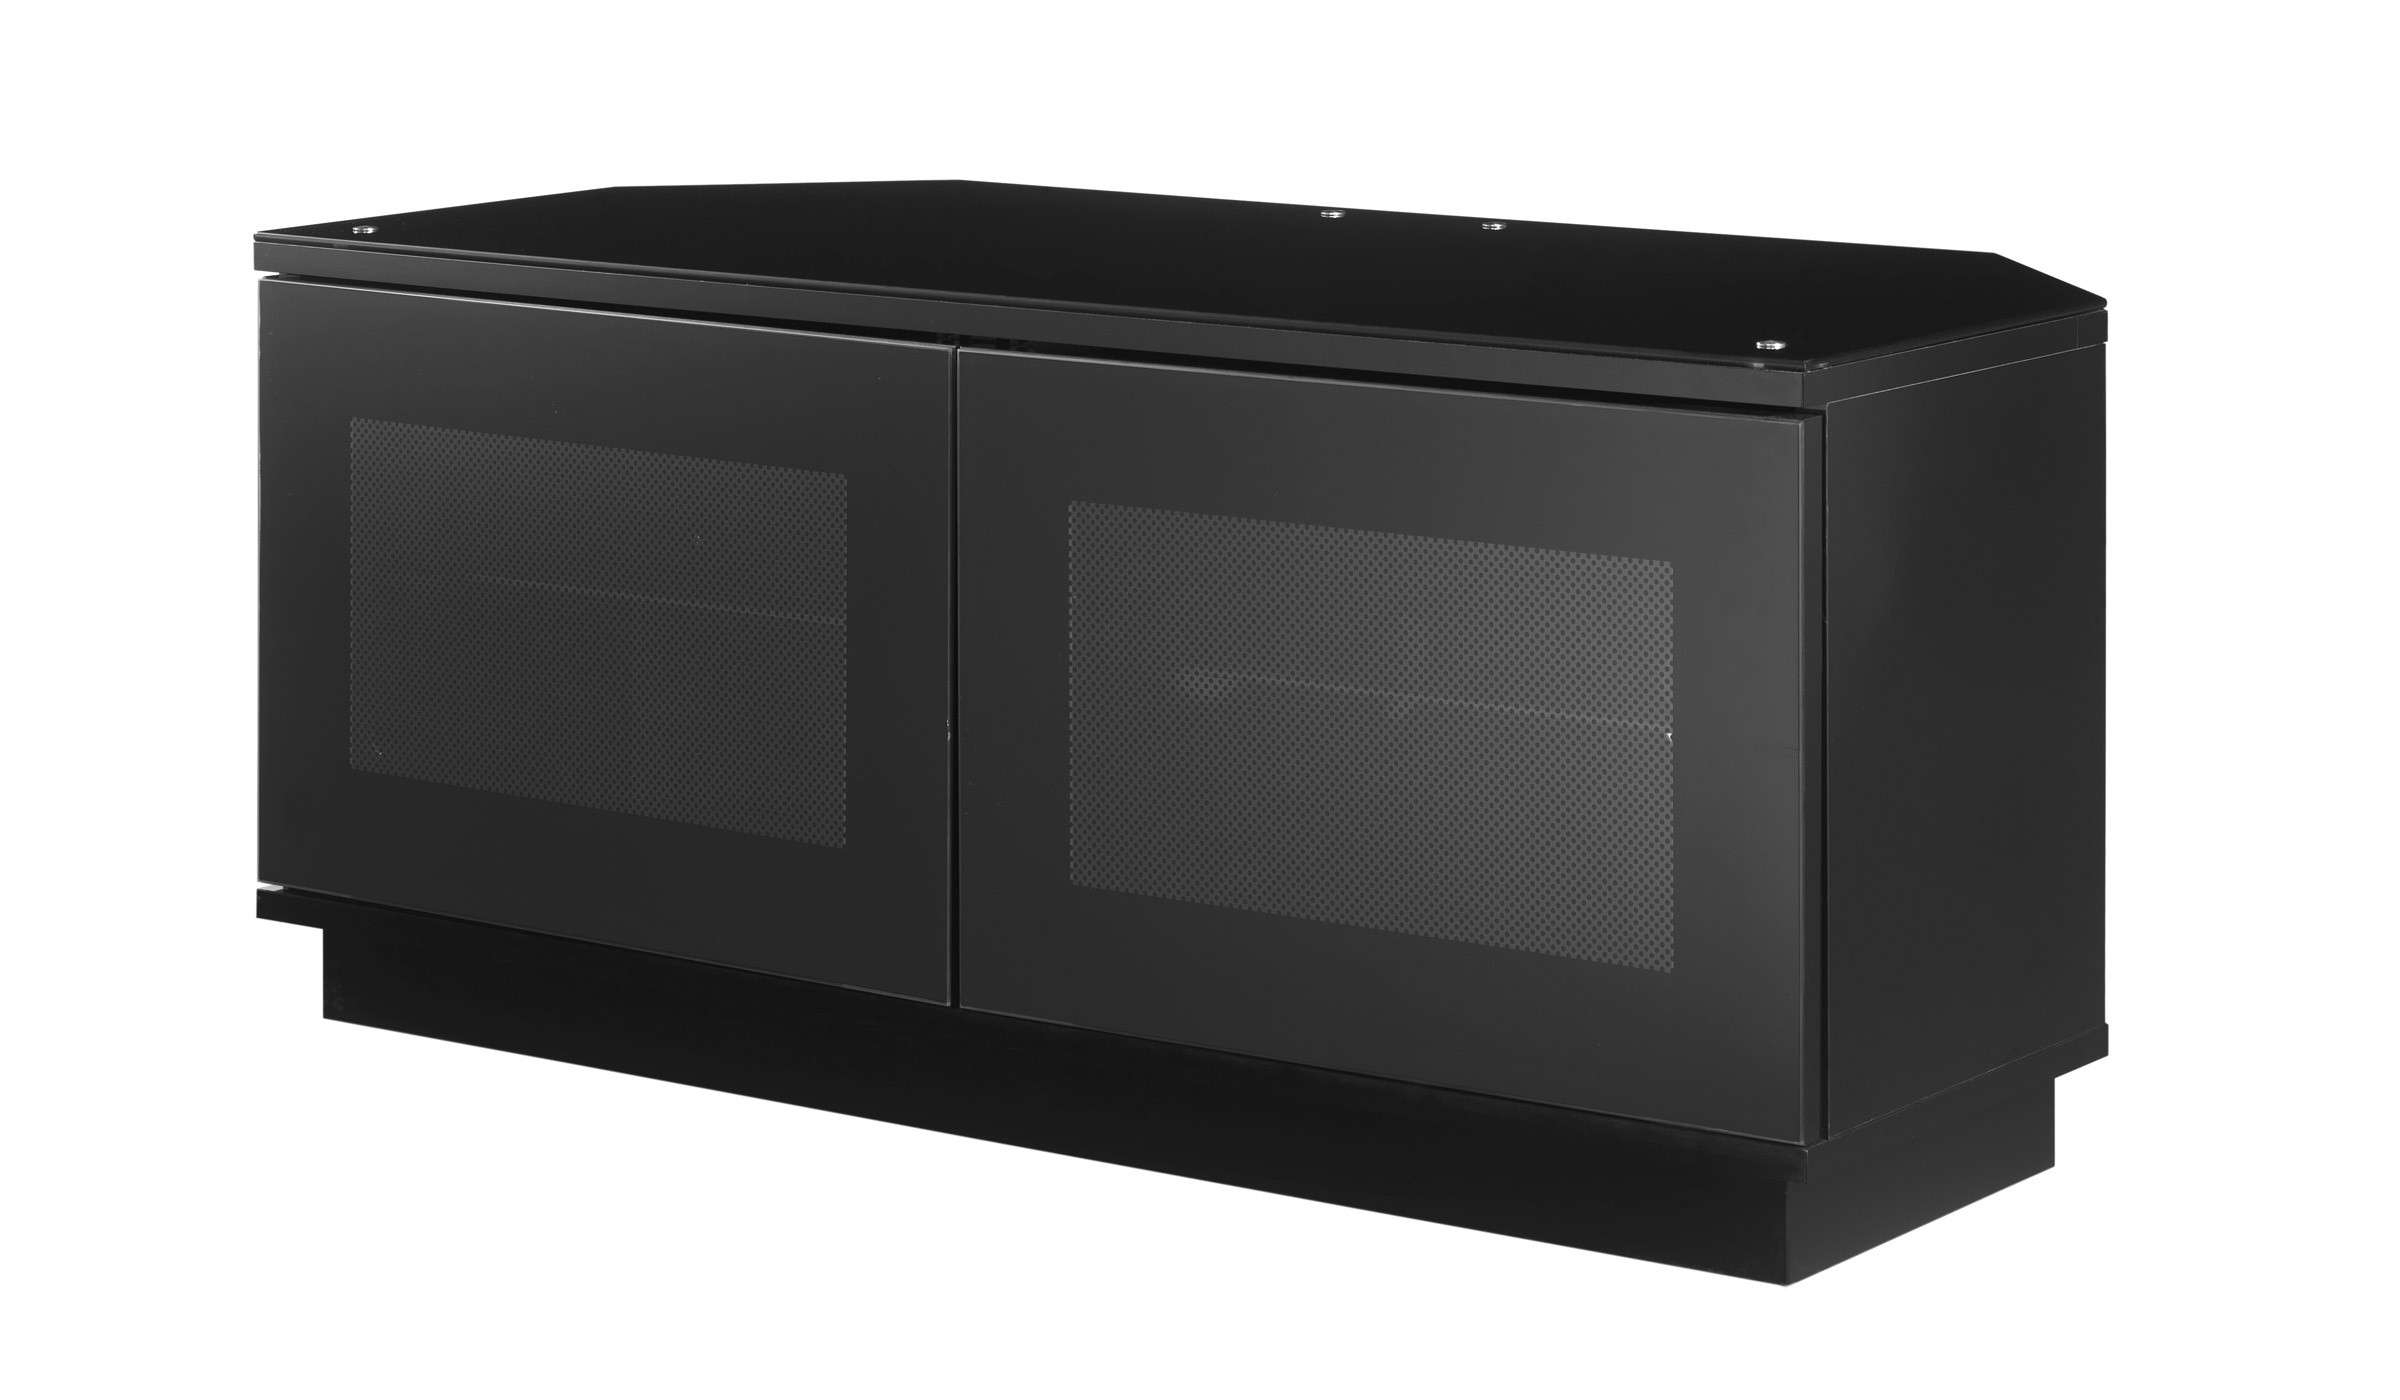 2020 Latest Black Tv Cabinets With Doors in sizing 2400 X 1400